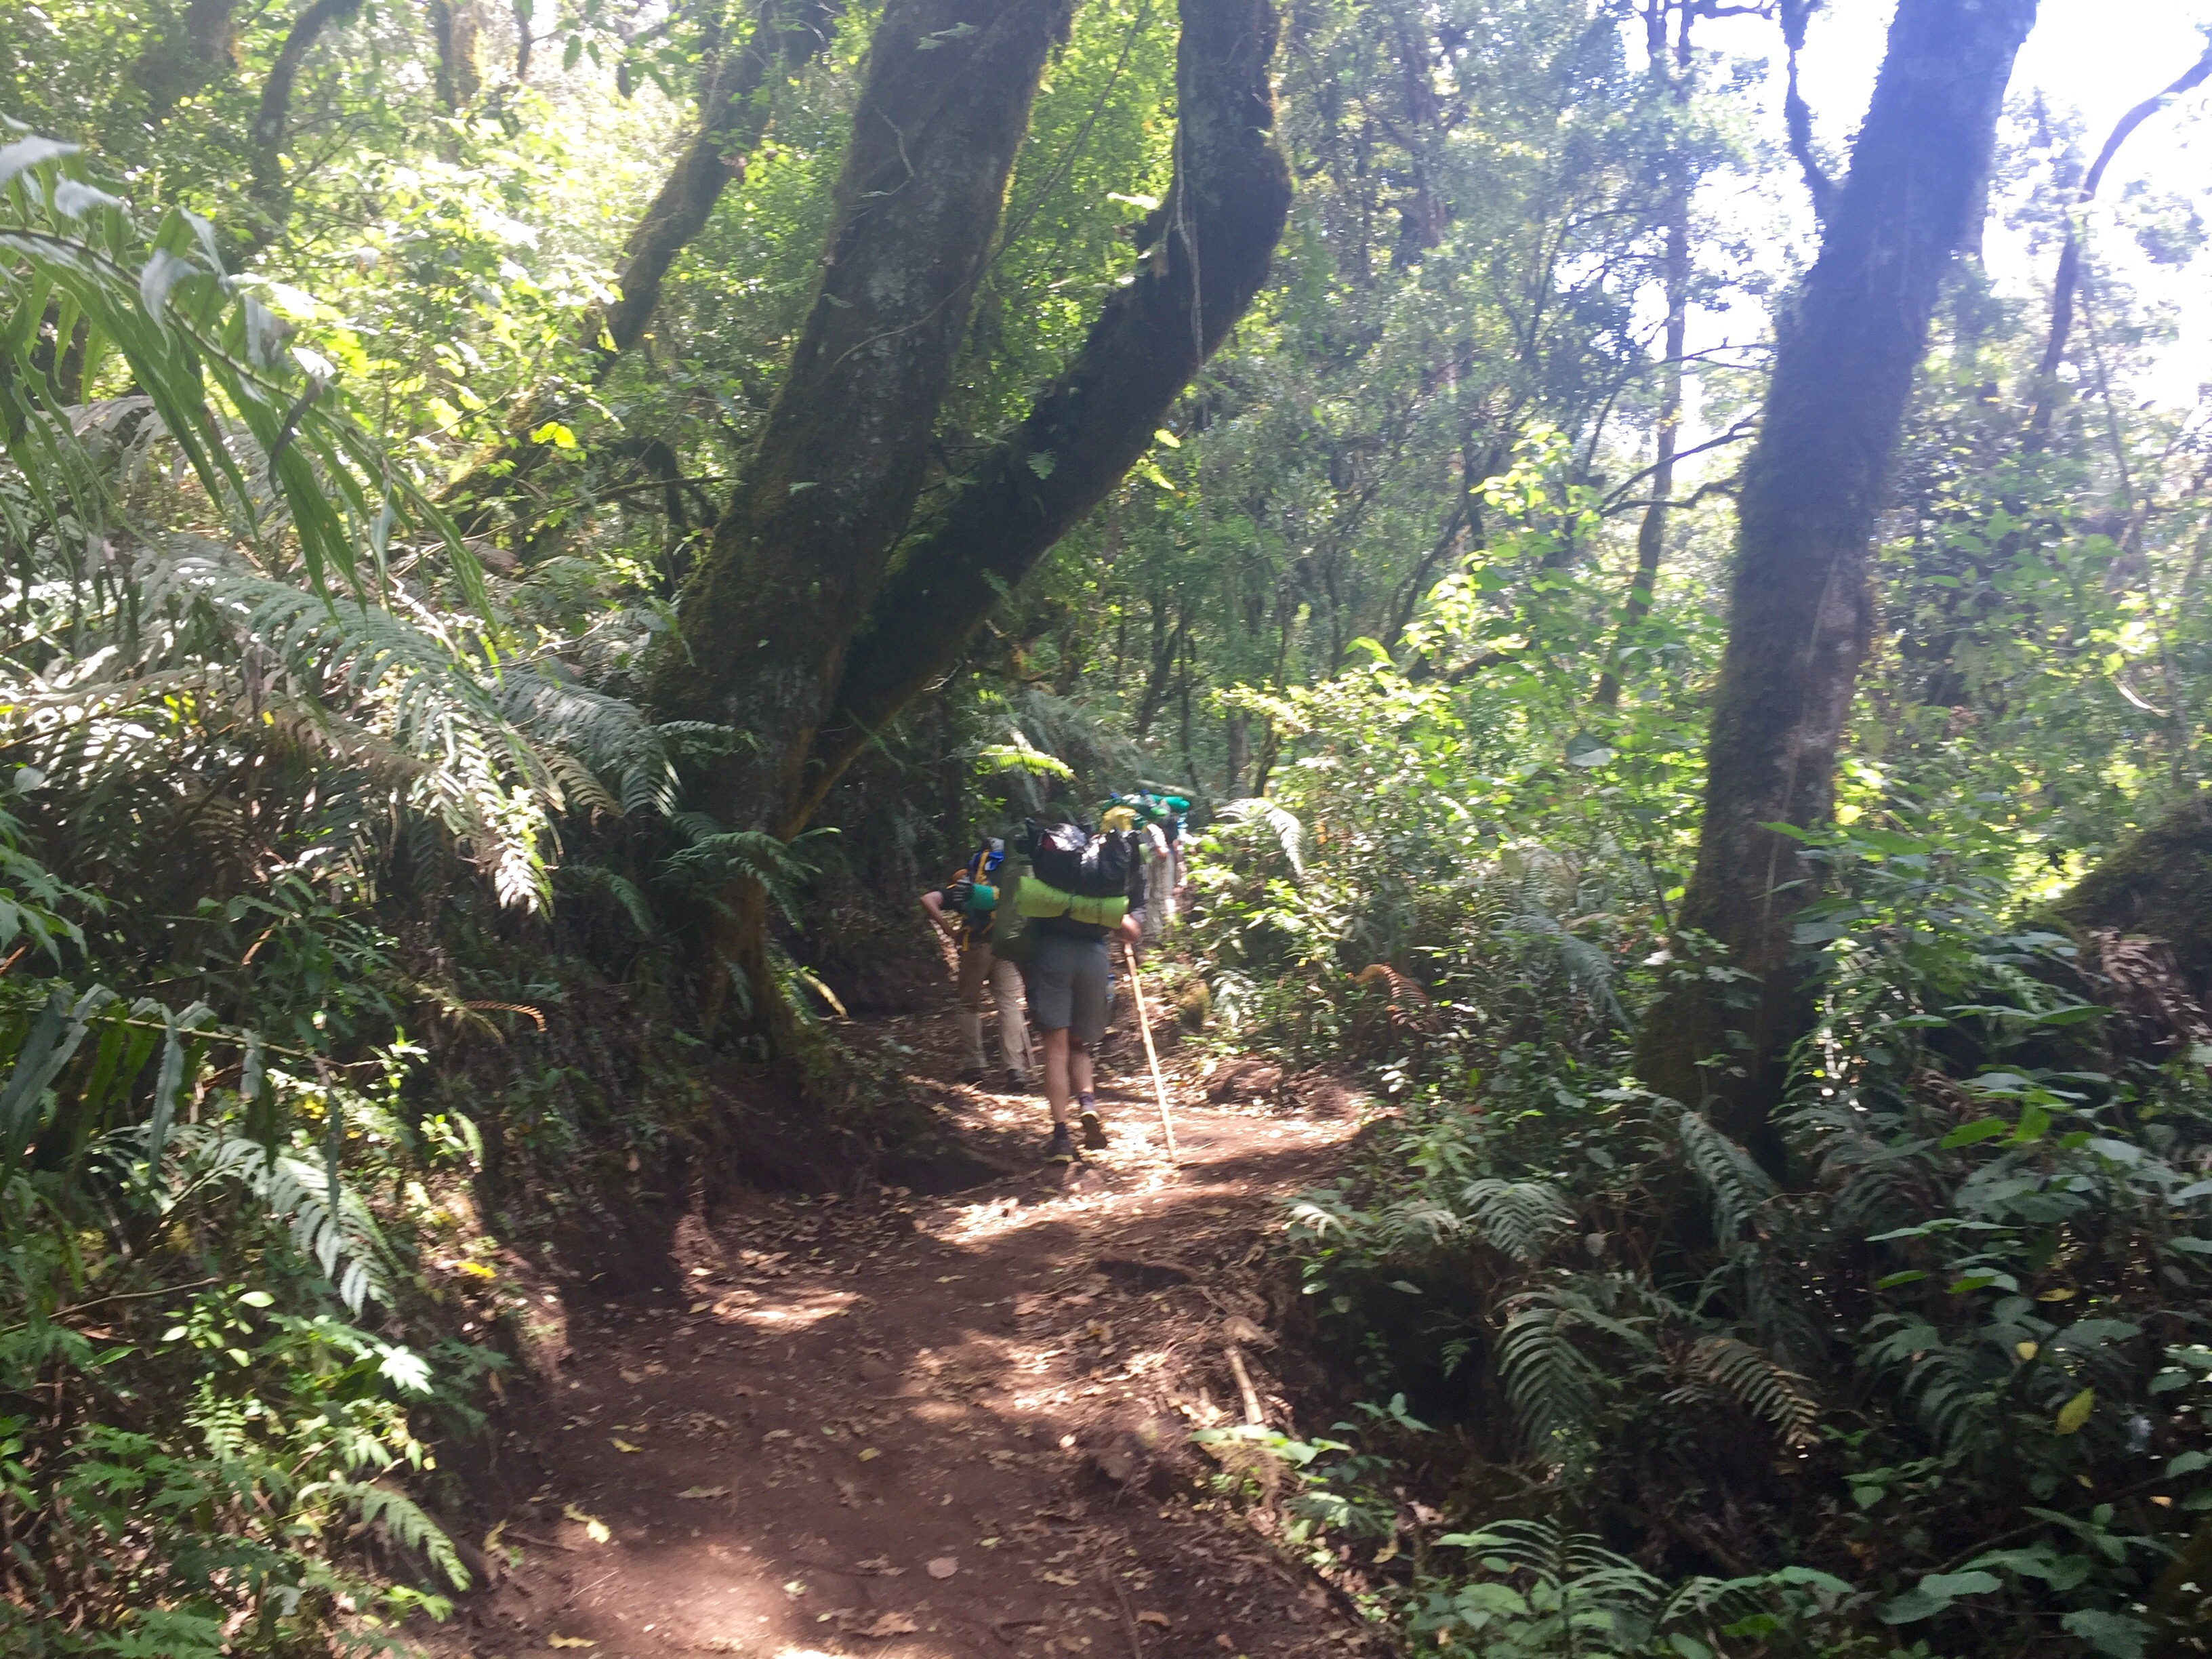 The second part of the hike, through the cloud forest.